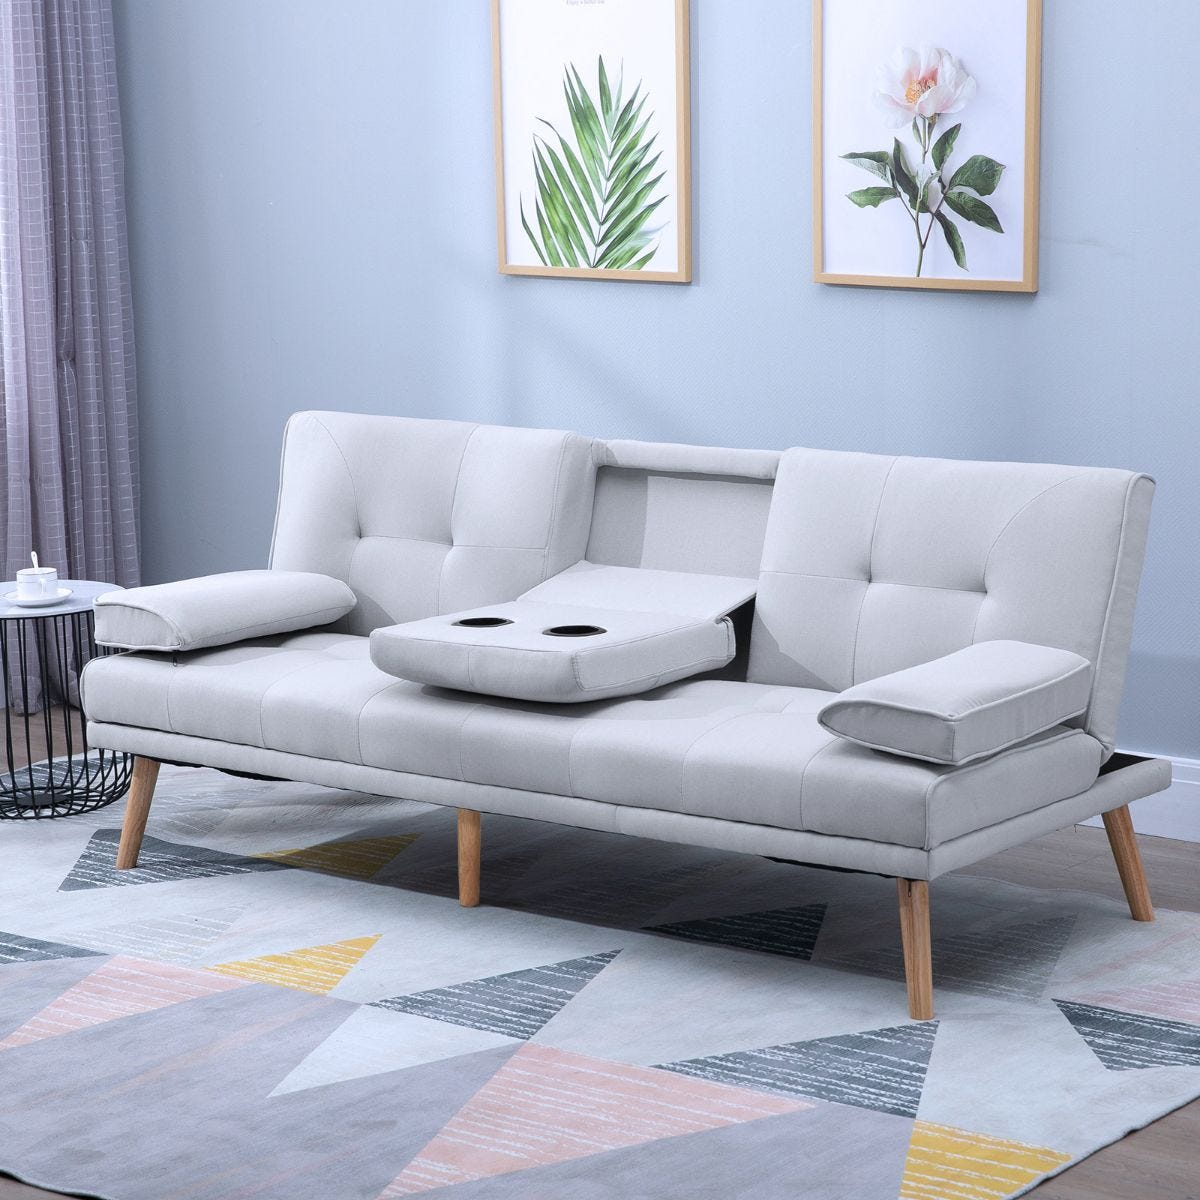 3 Seater Sofa Bed Scandi Style Recliner With Adjustable Back And Middle Drinks Table Grey